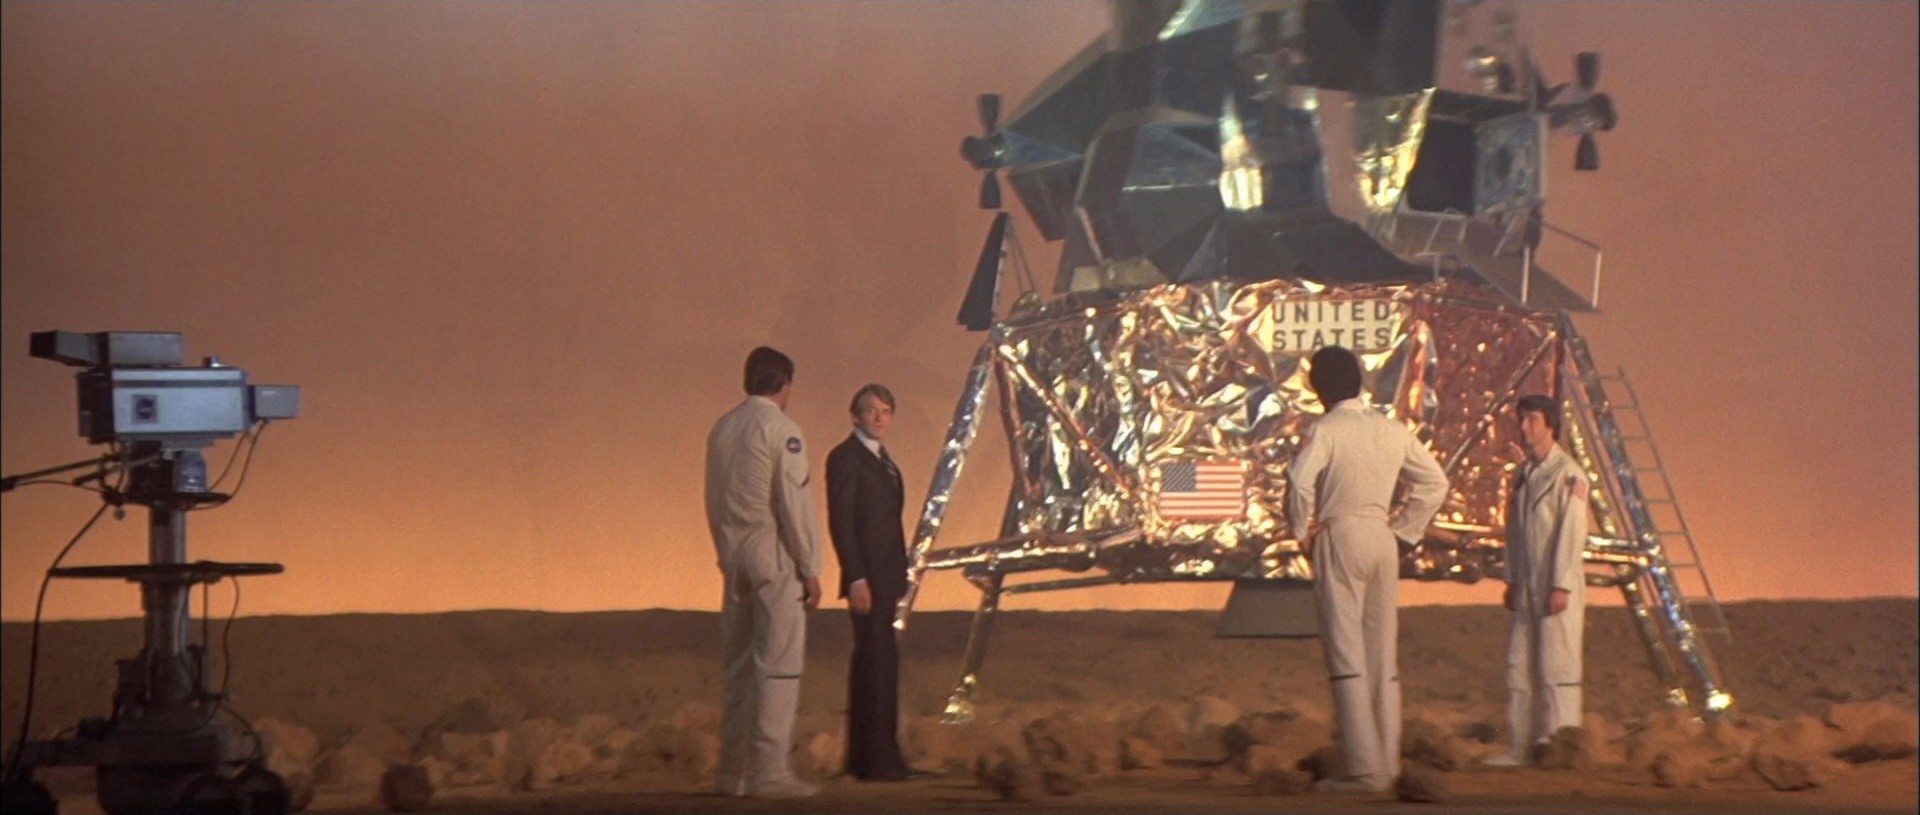 Capricorn One and the birth of the Moon Landing Hoax conspiracy